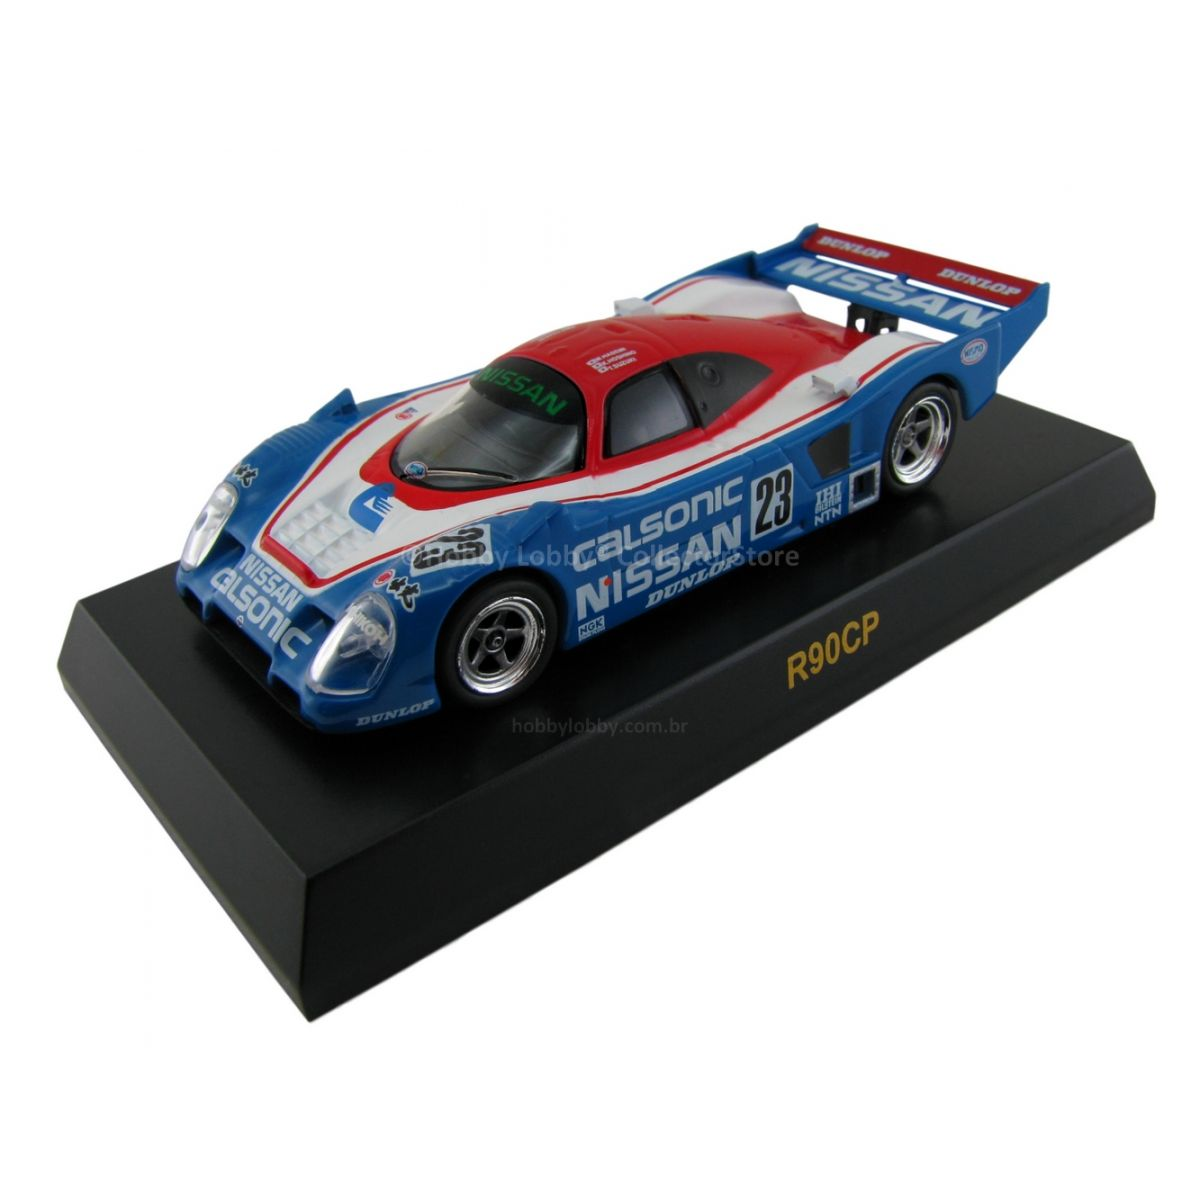 Kyosho - Nissan Racing Car - Nissan R90CP